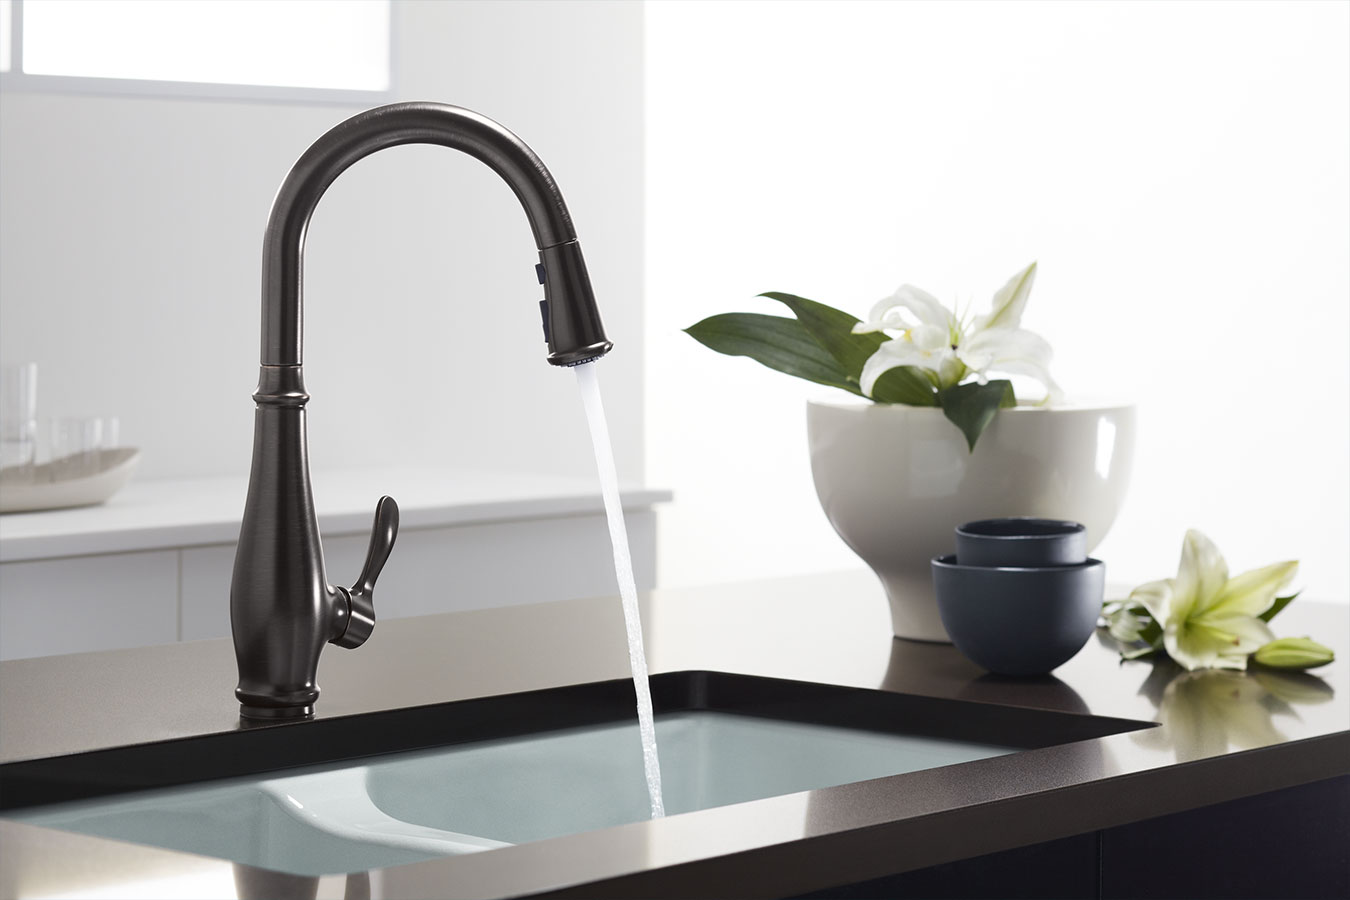 kohler featured gallery kitchen bath showroom accessories dartmouth ma middletown ri